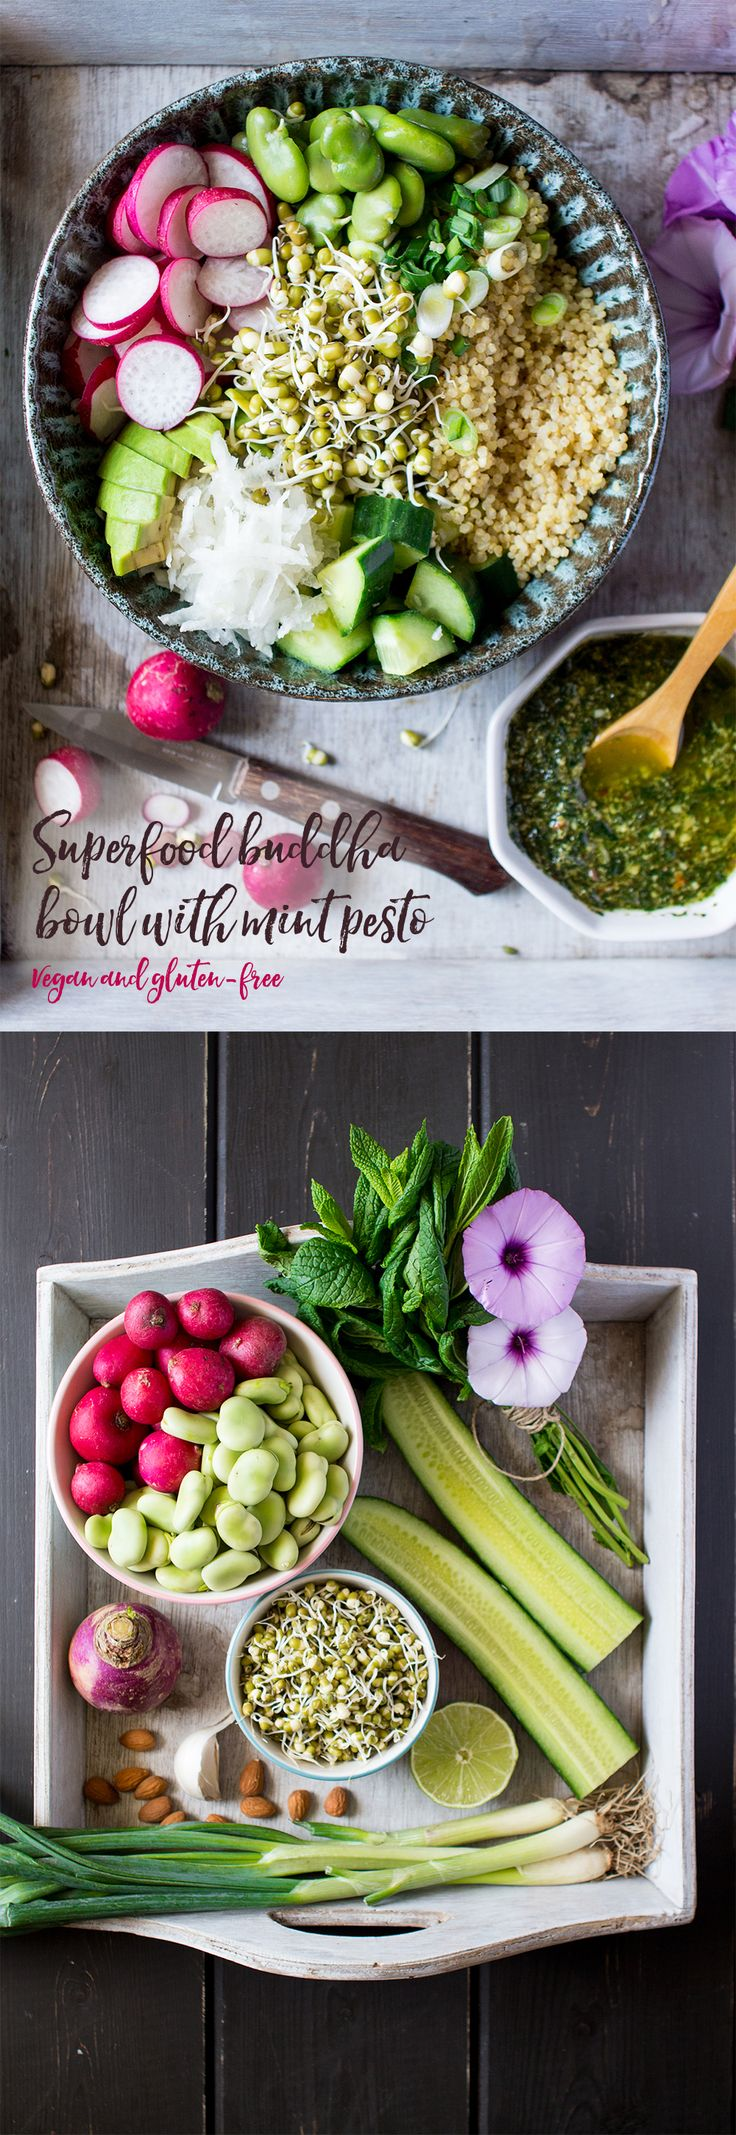 This #superfood #buddha #bowl with #mint #pesto makes a delicious, #healthy #vegan and #glutenfree #lunch. #recipe #recipes #vegetarian #salad